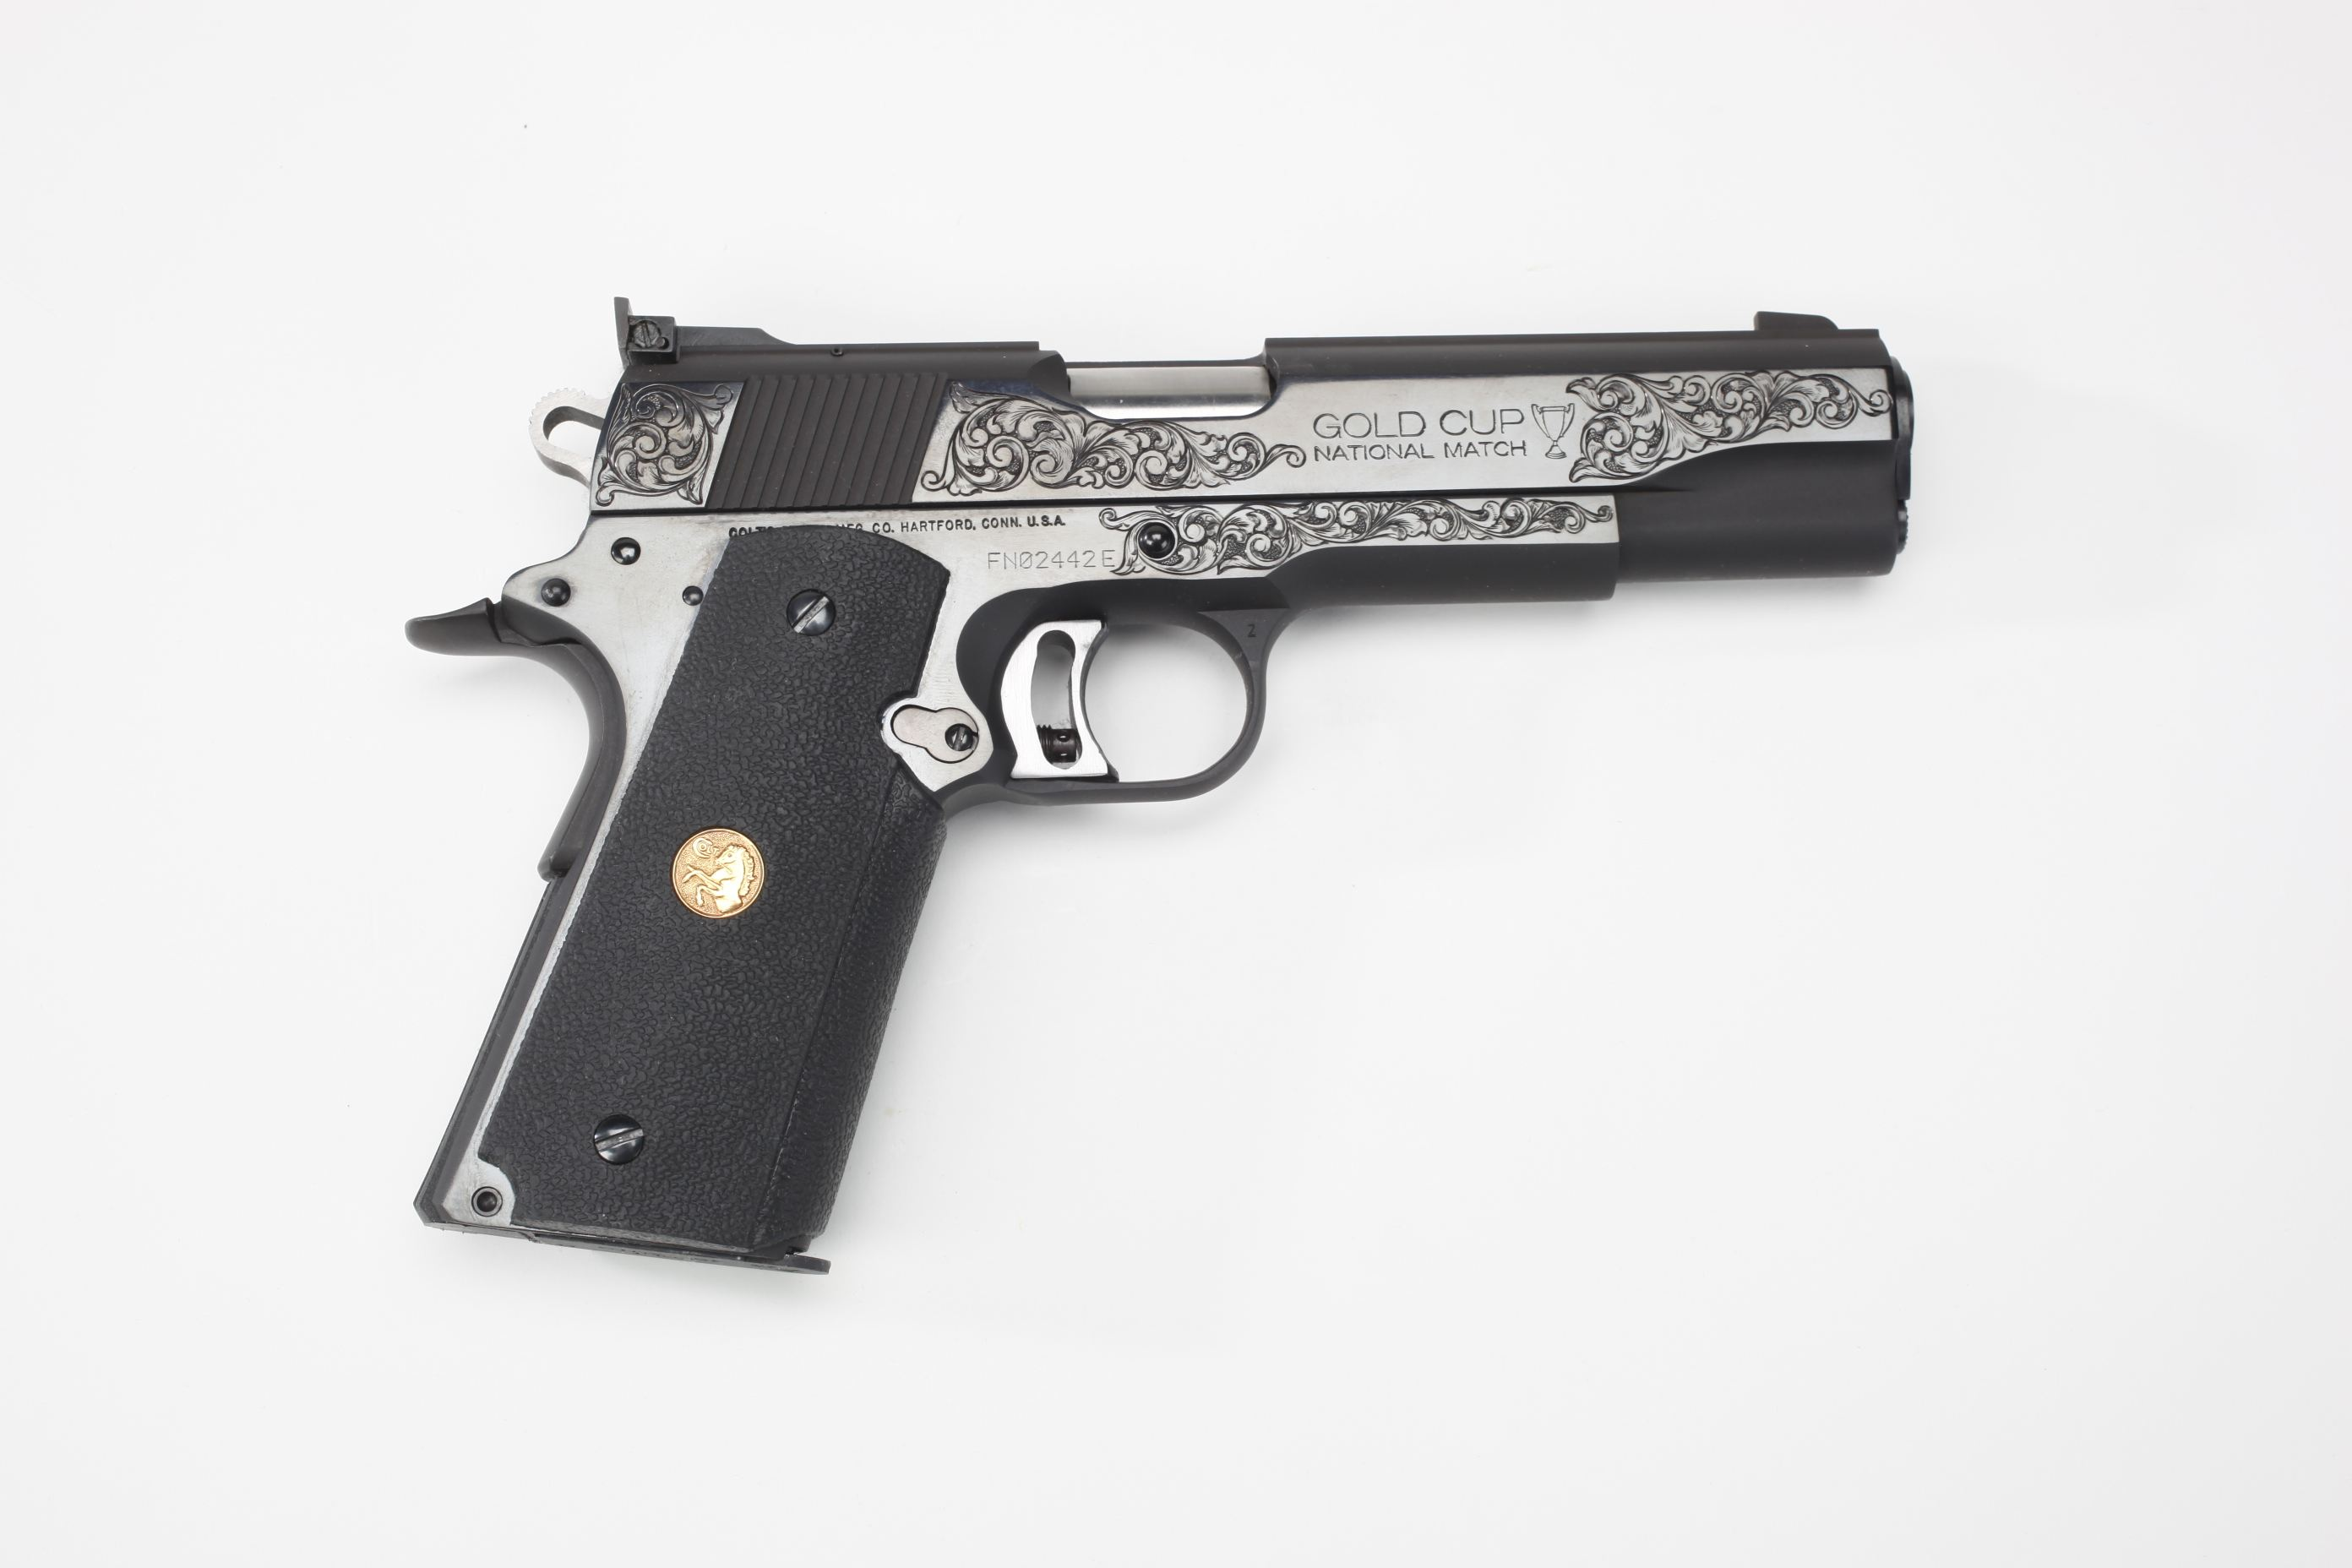 Colt Gold Cup Pistol 1993 Harry Reeves Trophy